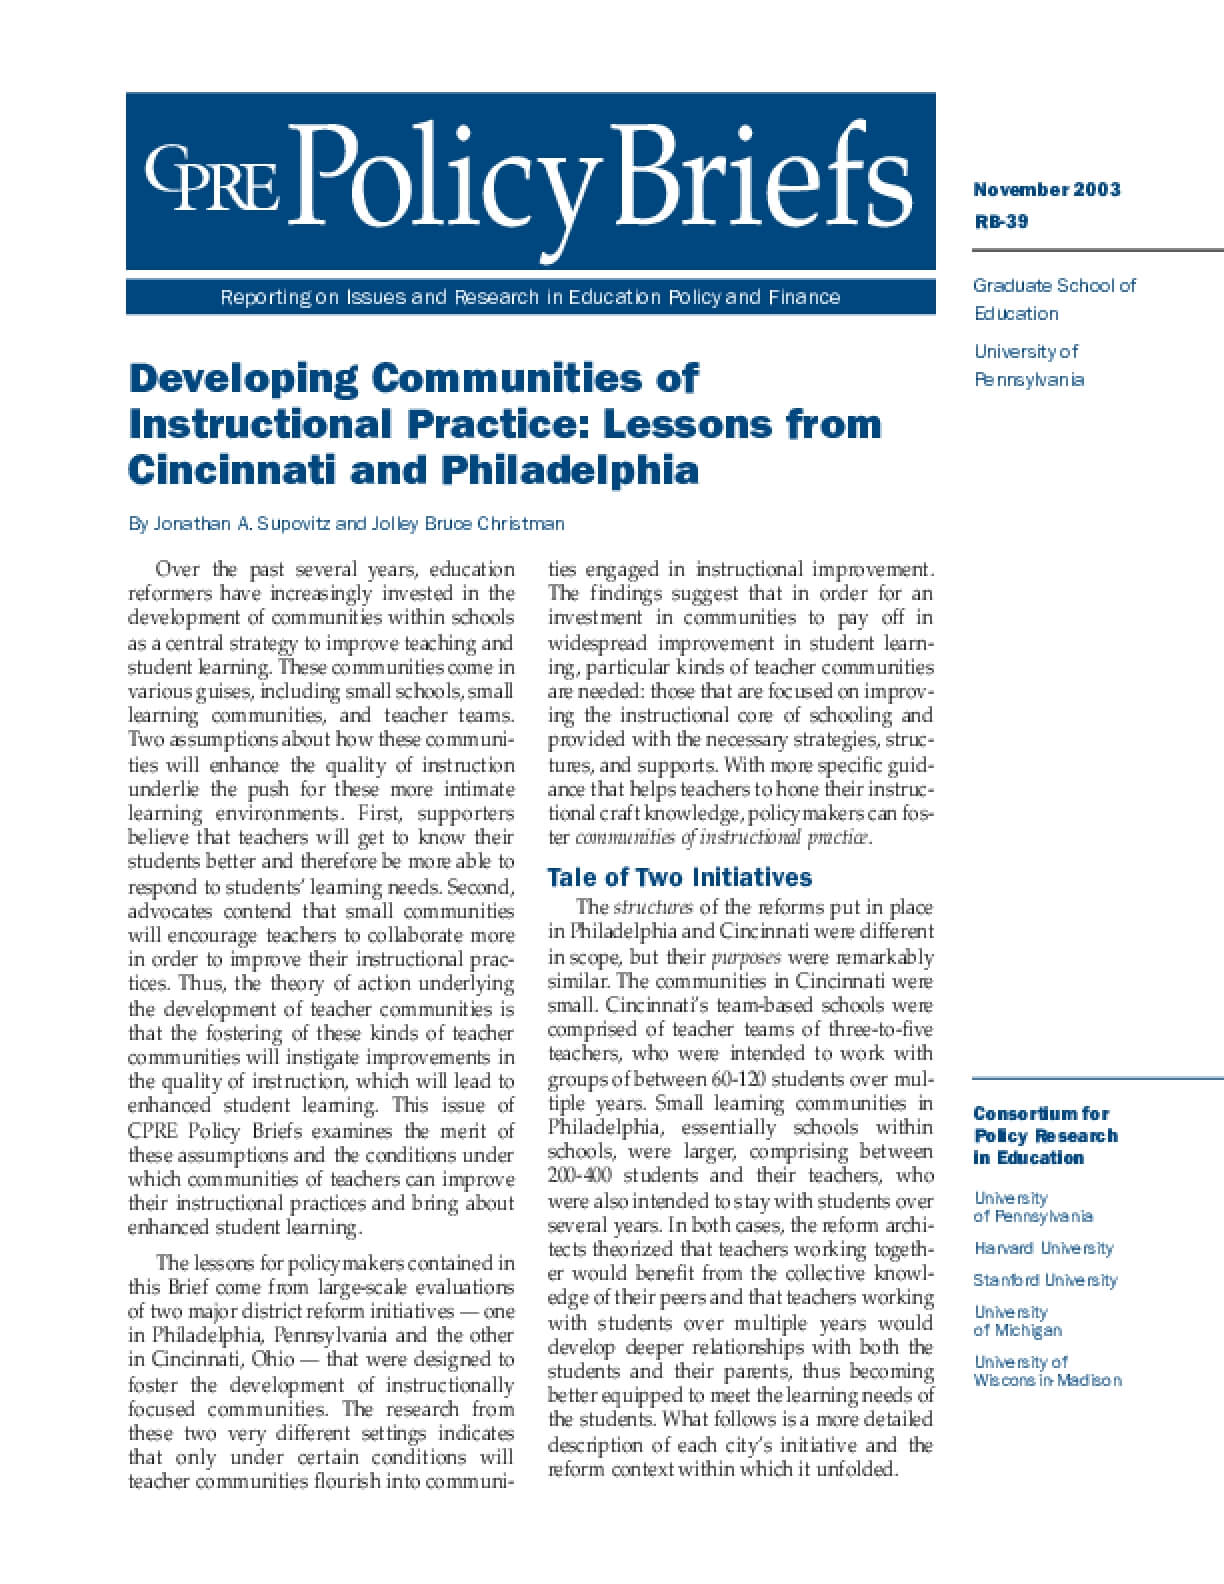 Developing Communities of Instructional Practice: Lessons From Cincinnati and Philadelphia